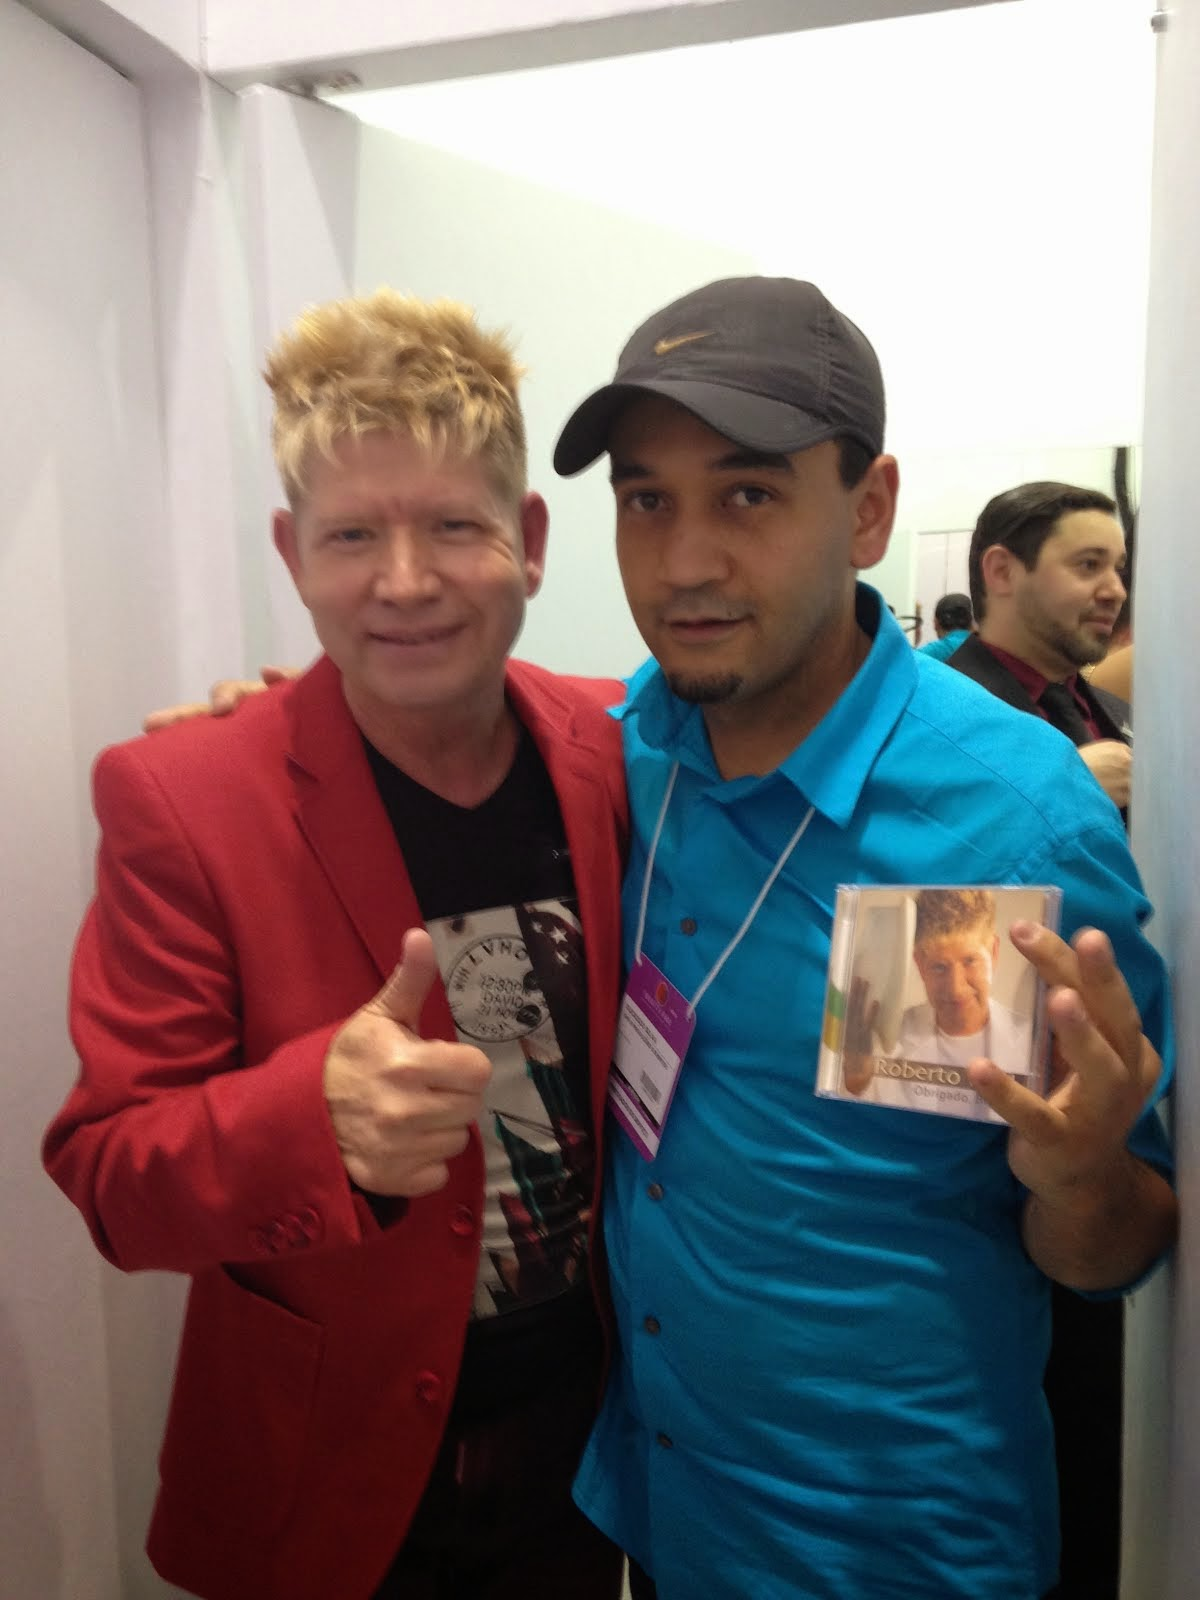 Roberto Leal e Eu - Beauty Fair 2014